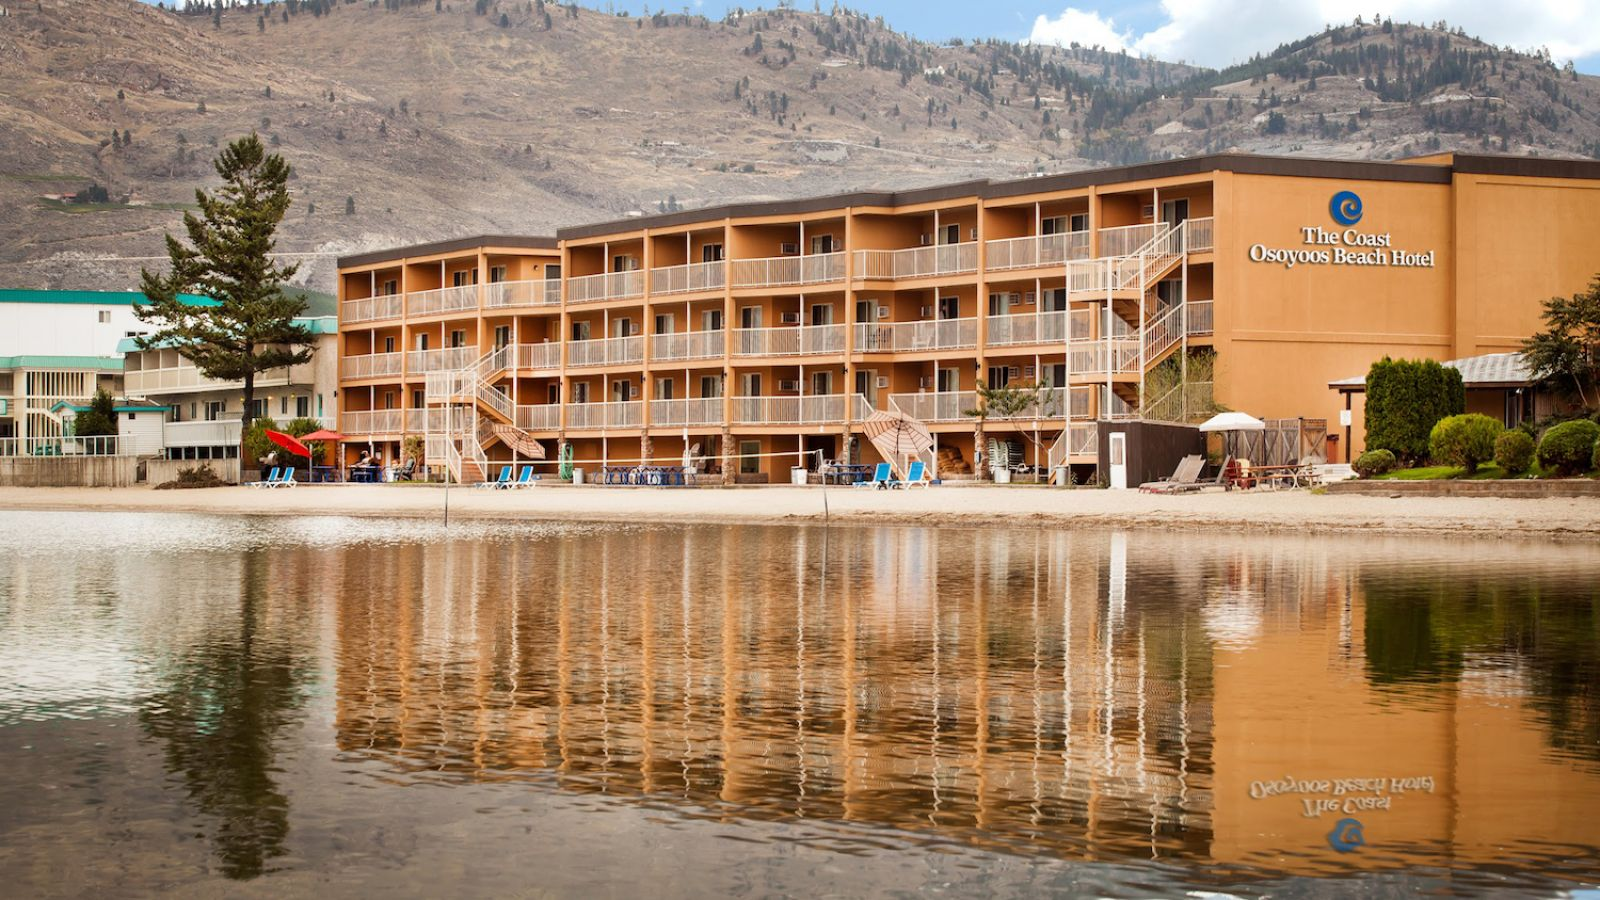 Coast Osoyoos Beach Hotel - Osoyoos golf packages